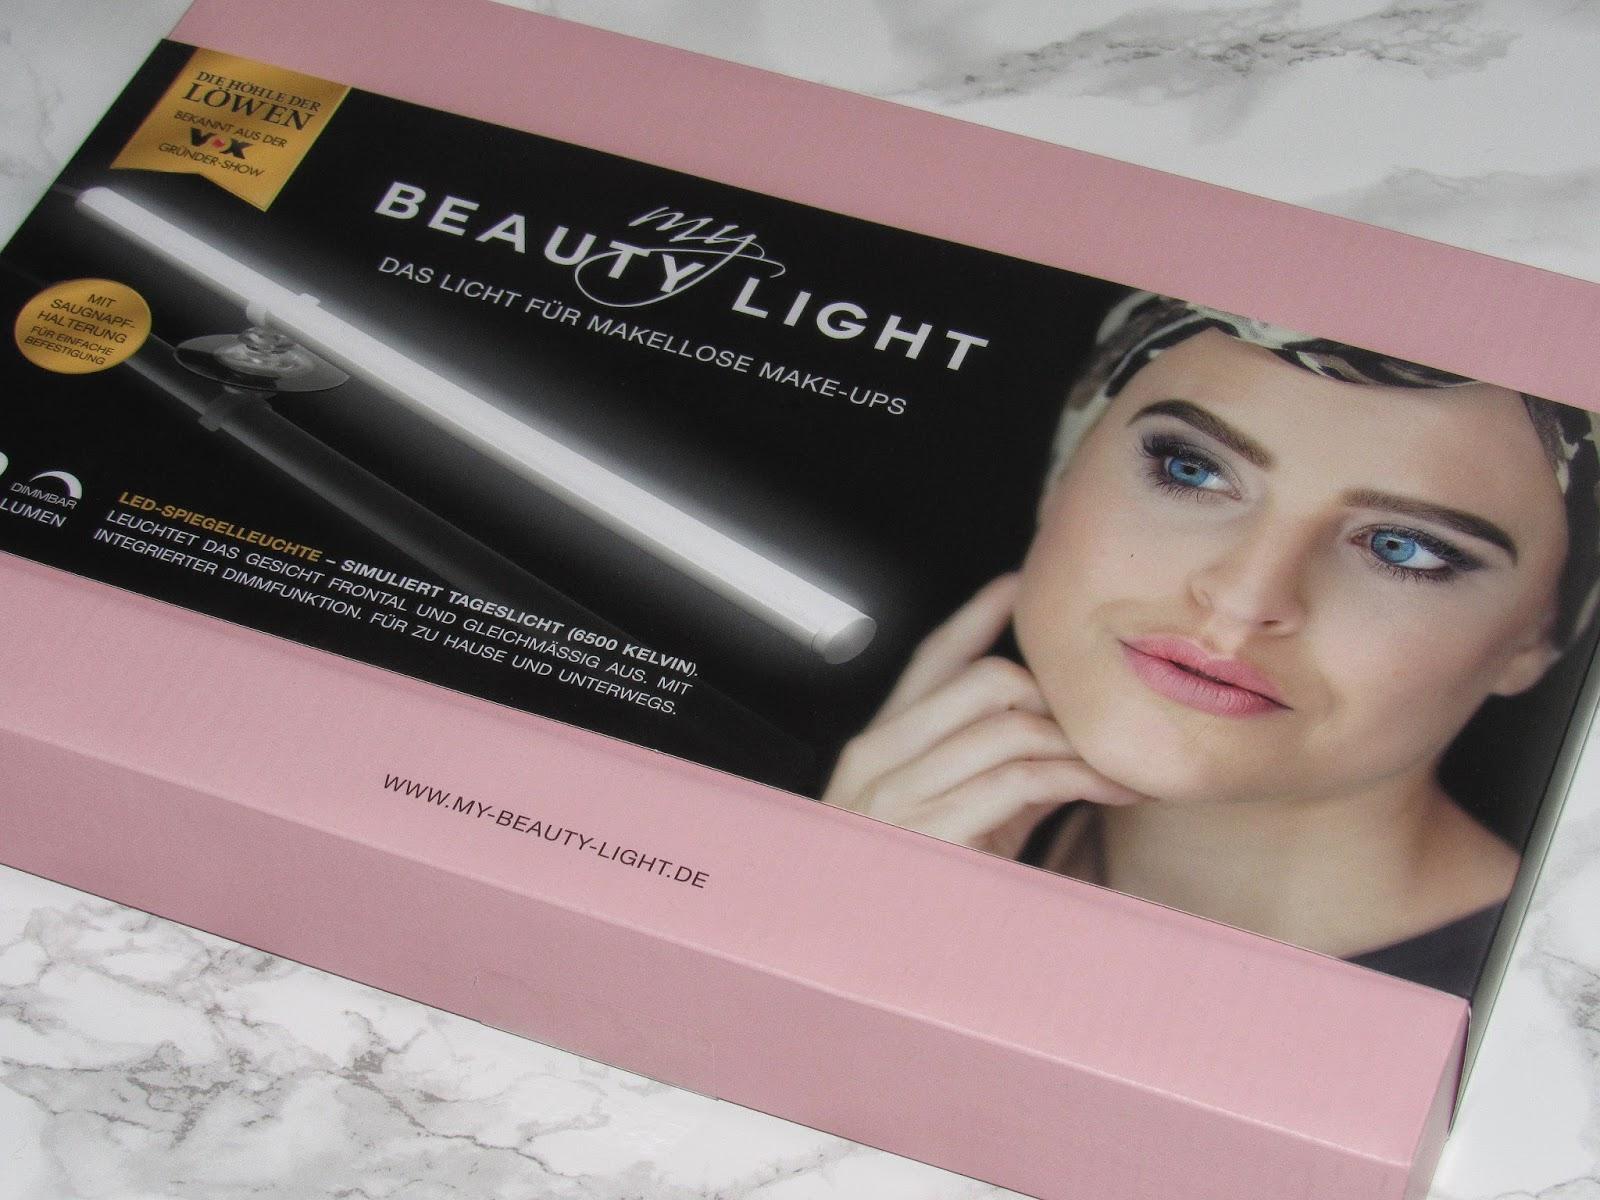 Pure Joy Of Life My Beauty Light Das Licht Fur Makellose Make Ups